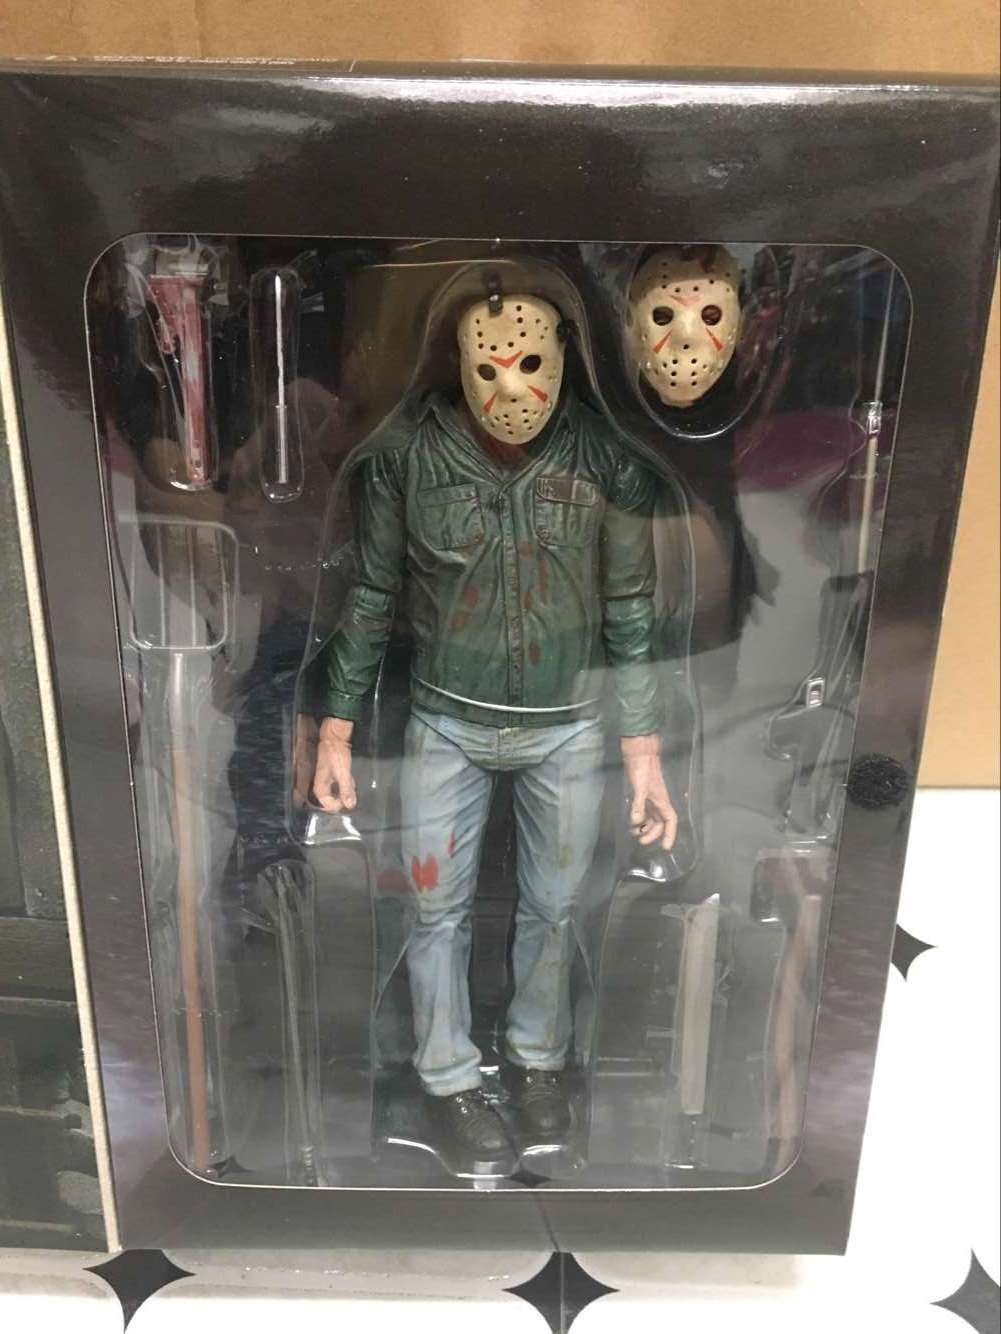 NECA A Nightmare on Elm Street 3 Dream Warriors PVC Action Figure Collectible Model Toy Friday the 13th Part 3 3D Jason Voorhees neca friday the 13th the final chapter jason voorhees pvc action figure collectible model toy 7inch 18cm